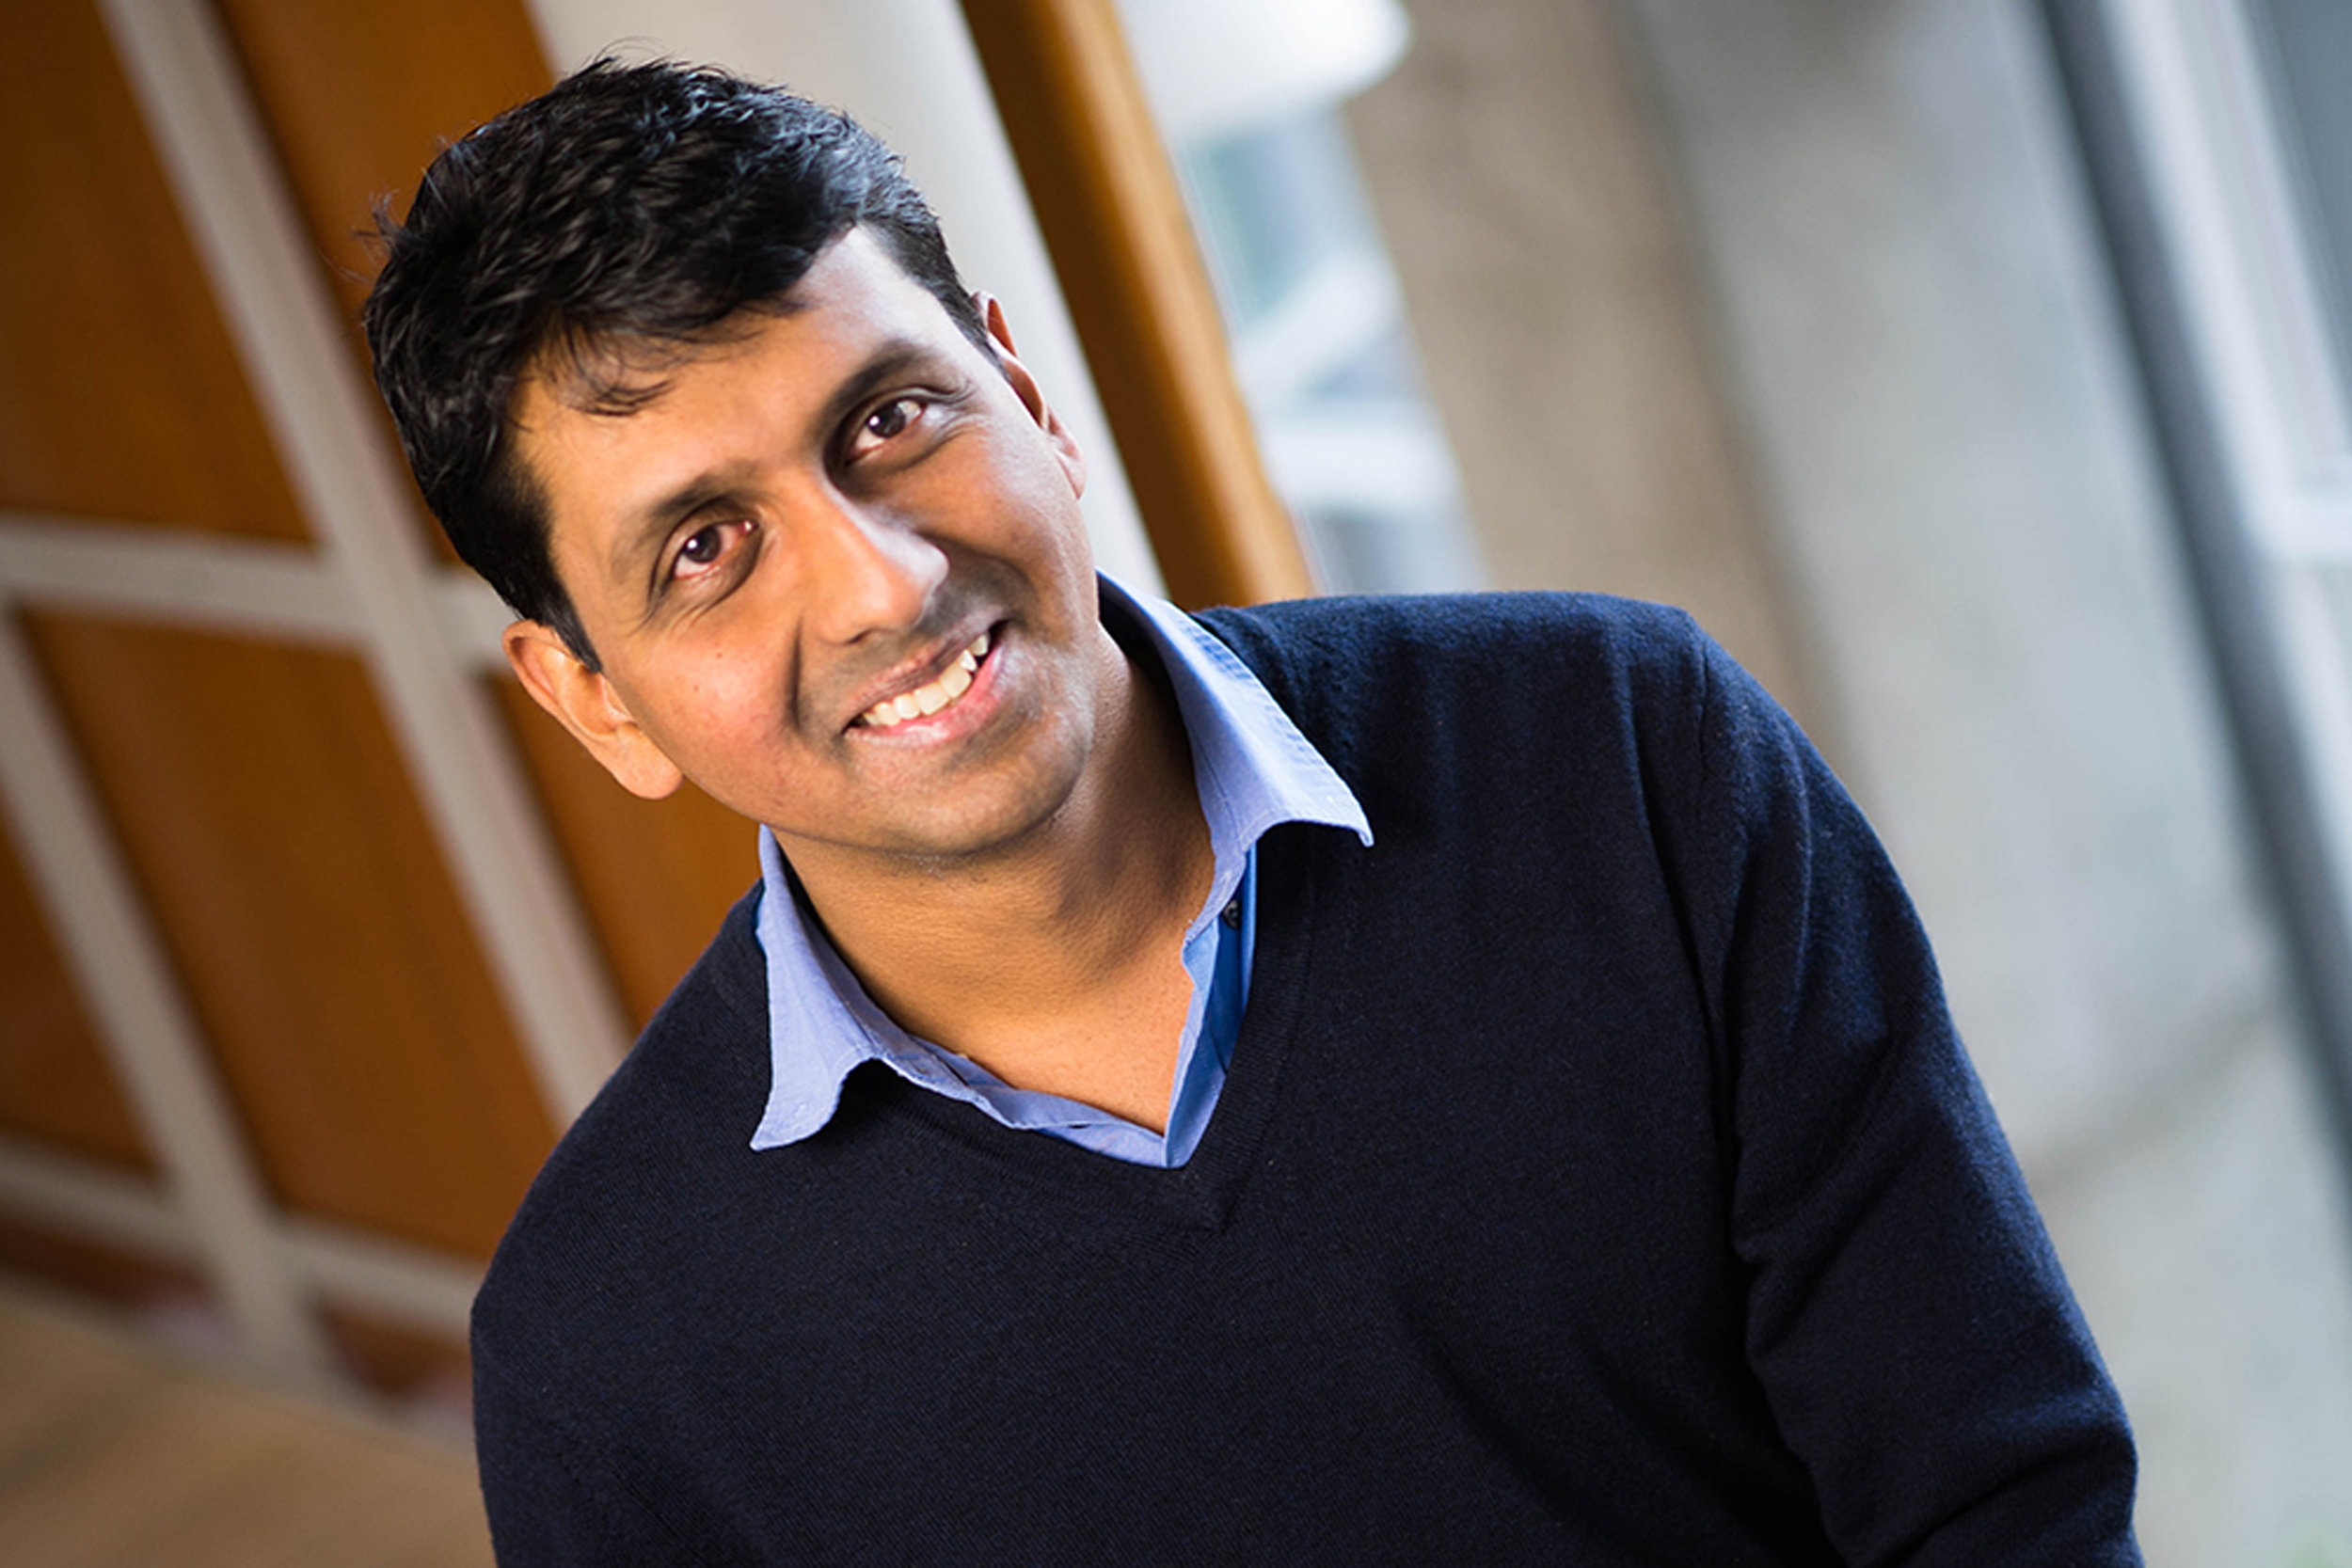 2017-2018 Winner - Vinod Vaikuntanathan, the 2017-2018 Edgerton Award winner, is an associate professor of electrical engineering and computer science and a principal investigator in CSAIL.Read more at MIT News